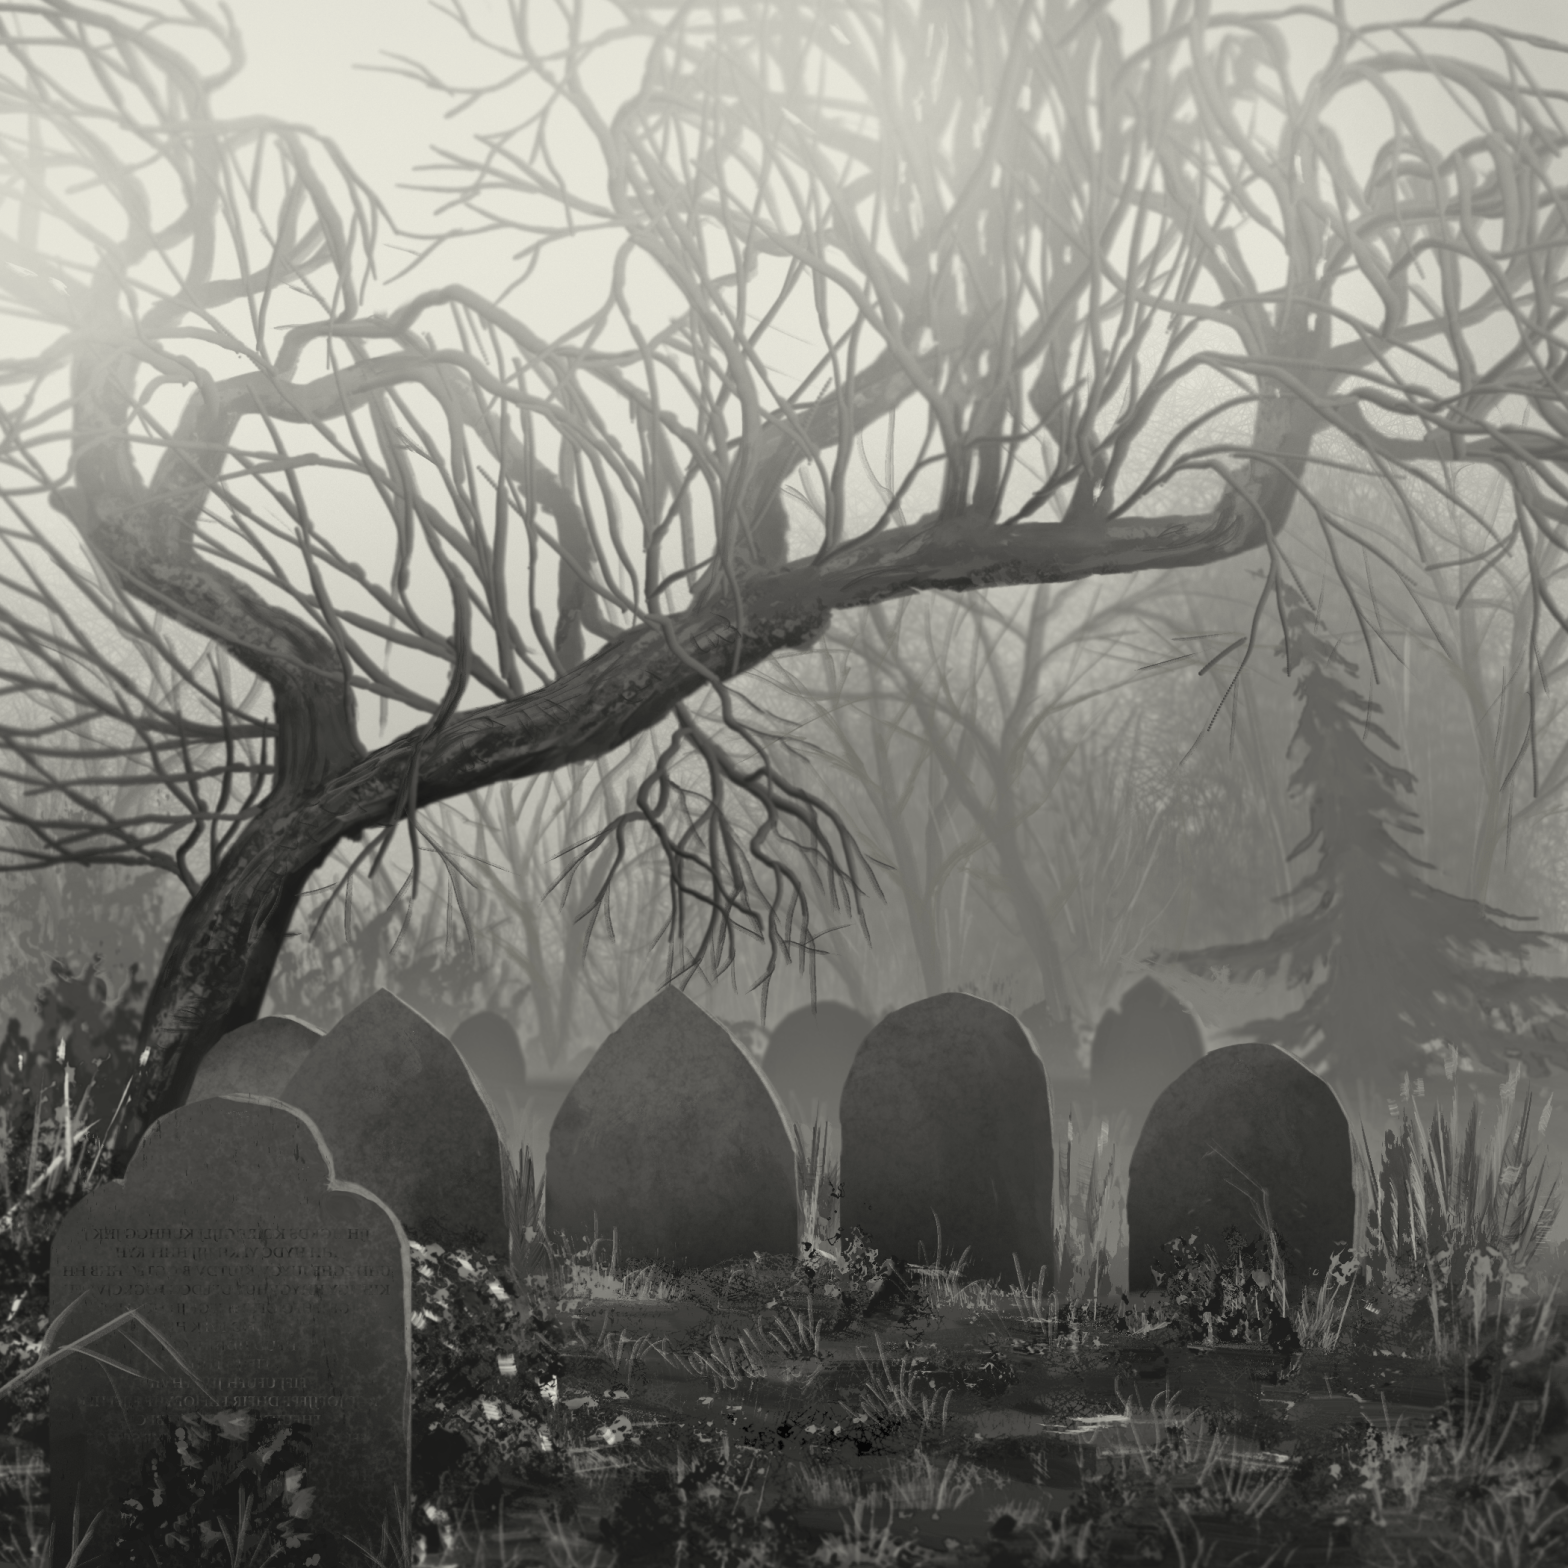 graveyard halloween painting made with corel painter 2021